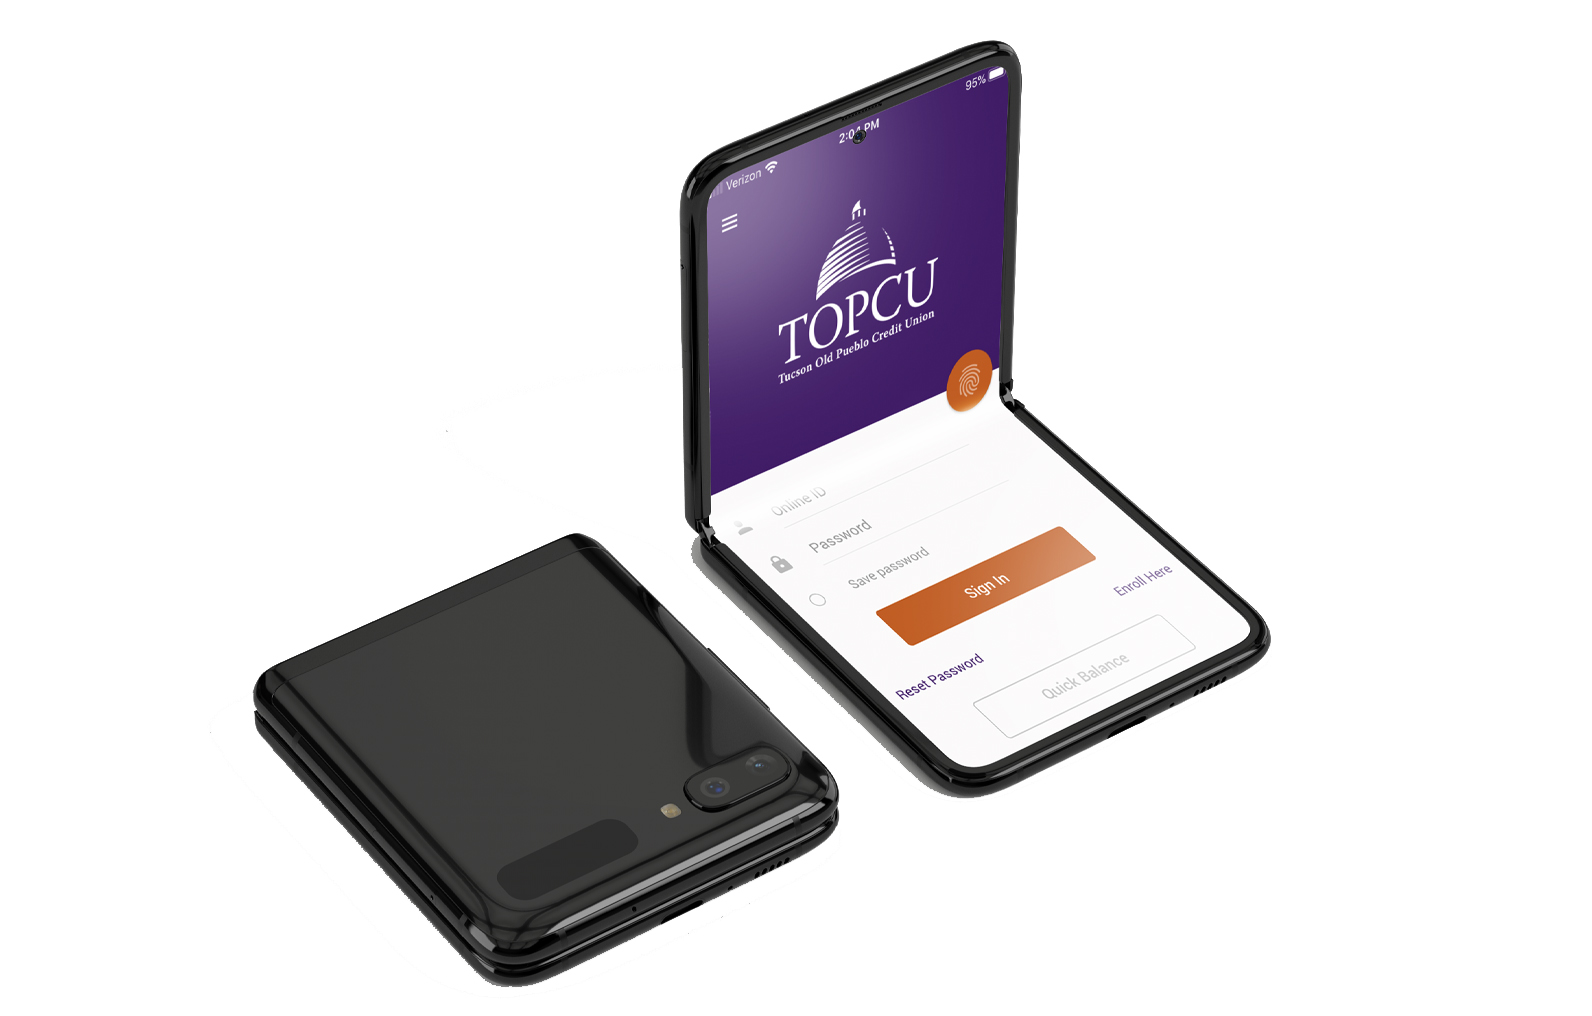 Hands holding cell phone with finger pointing to TOPCU mobile app display